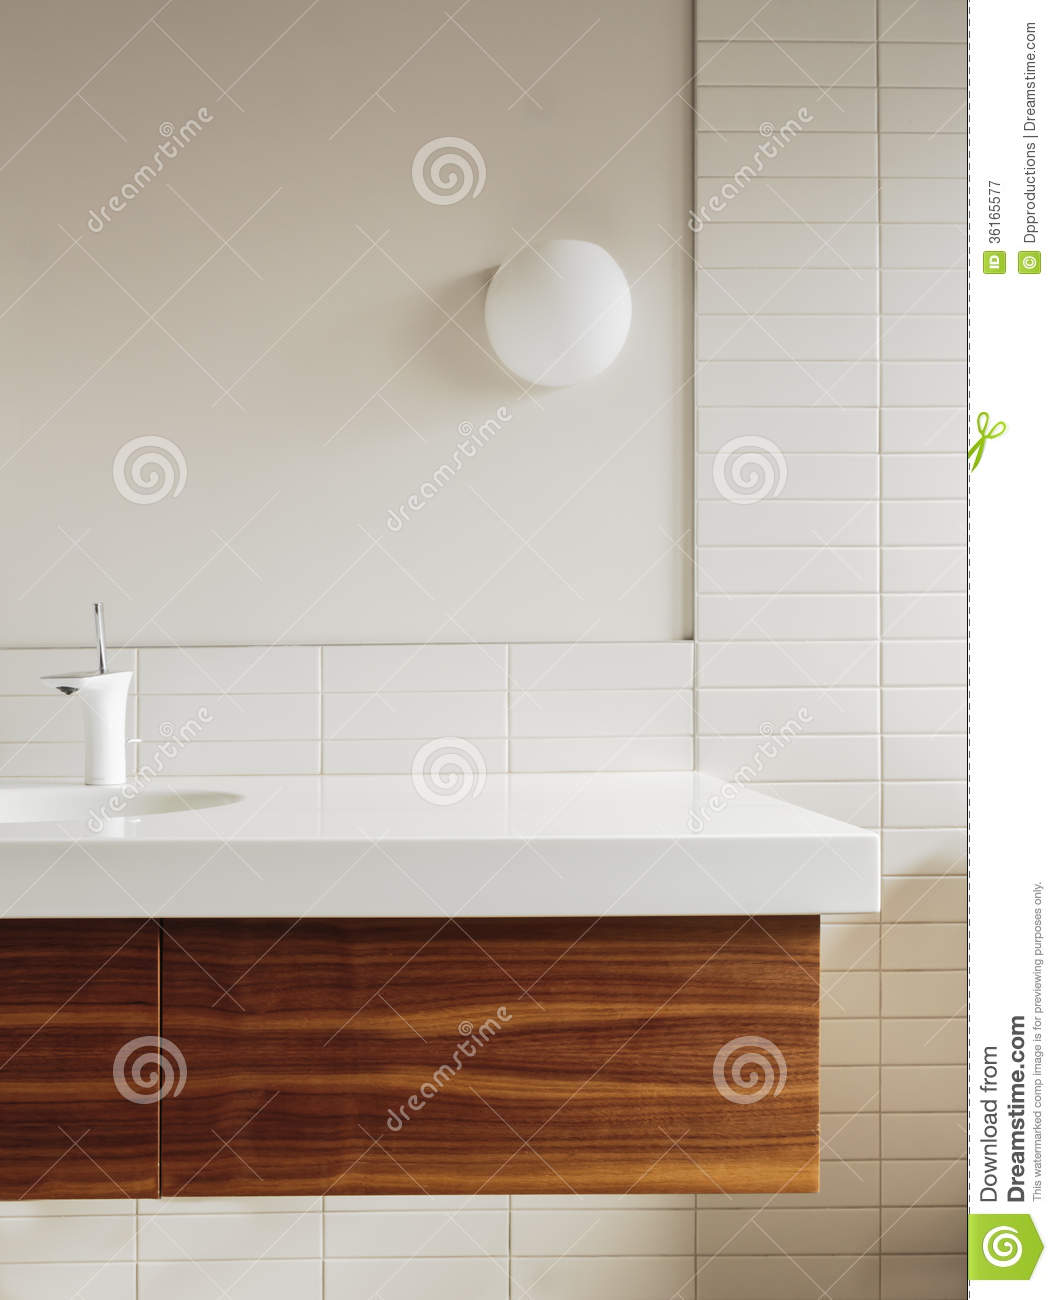 Detail Of Bathroom Counter And Tile In Modern Home Stock Image ...